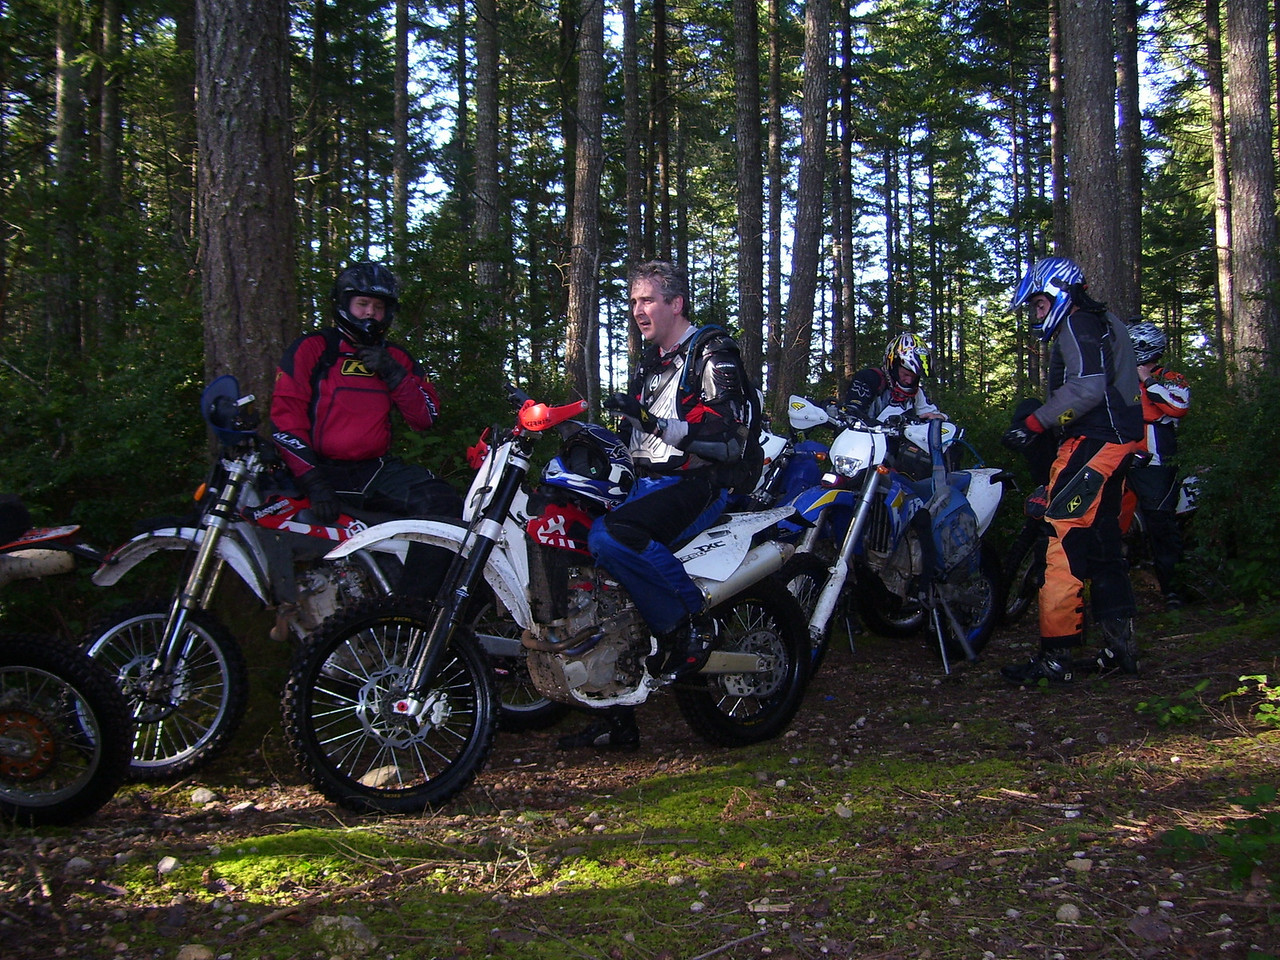 Saturday we rode on the Eastside of the abandoned Elfandahl Pass Rd. Many of the trails were untouched with ice in the puddles. Husaburgs & Husqvarnas out numbered the KTMs...?